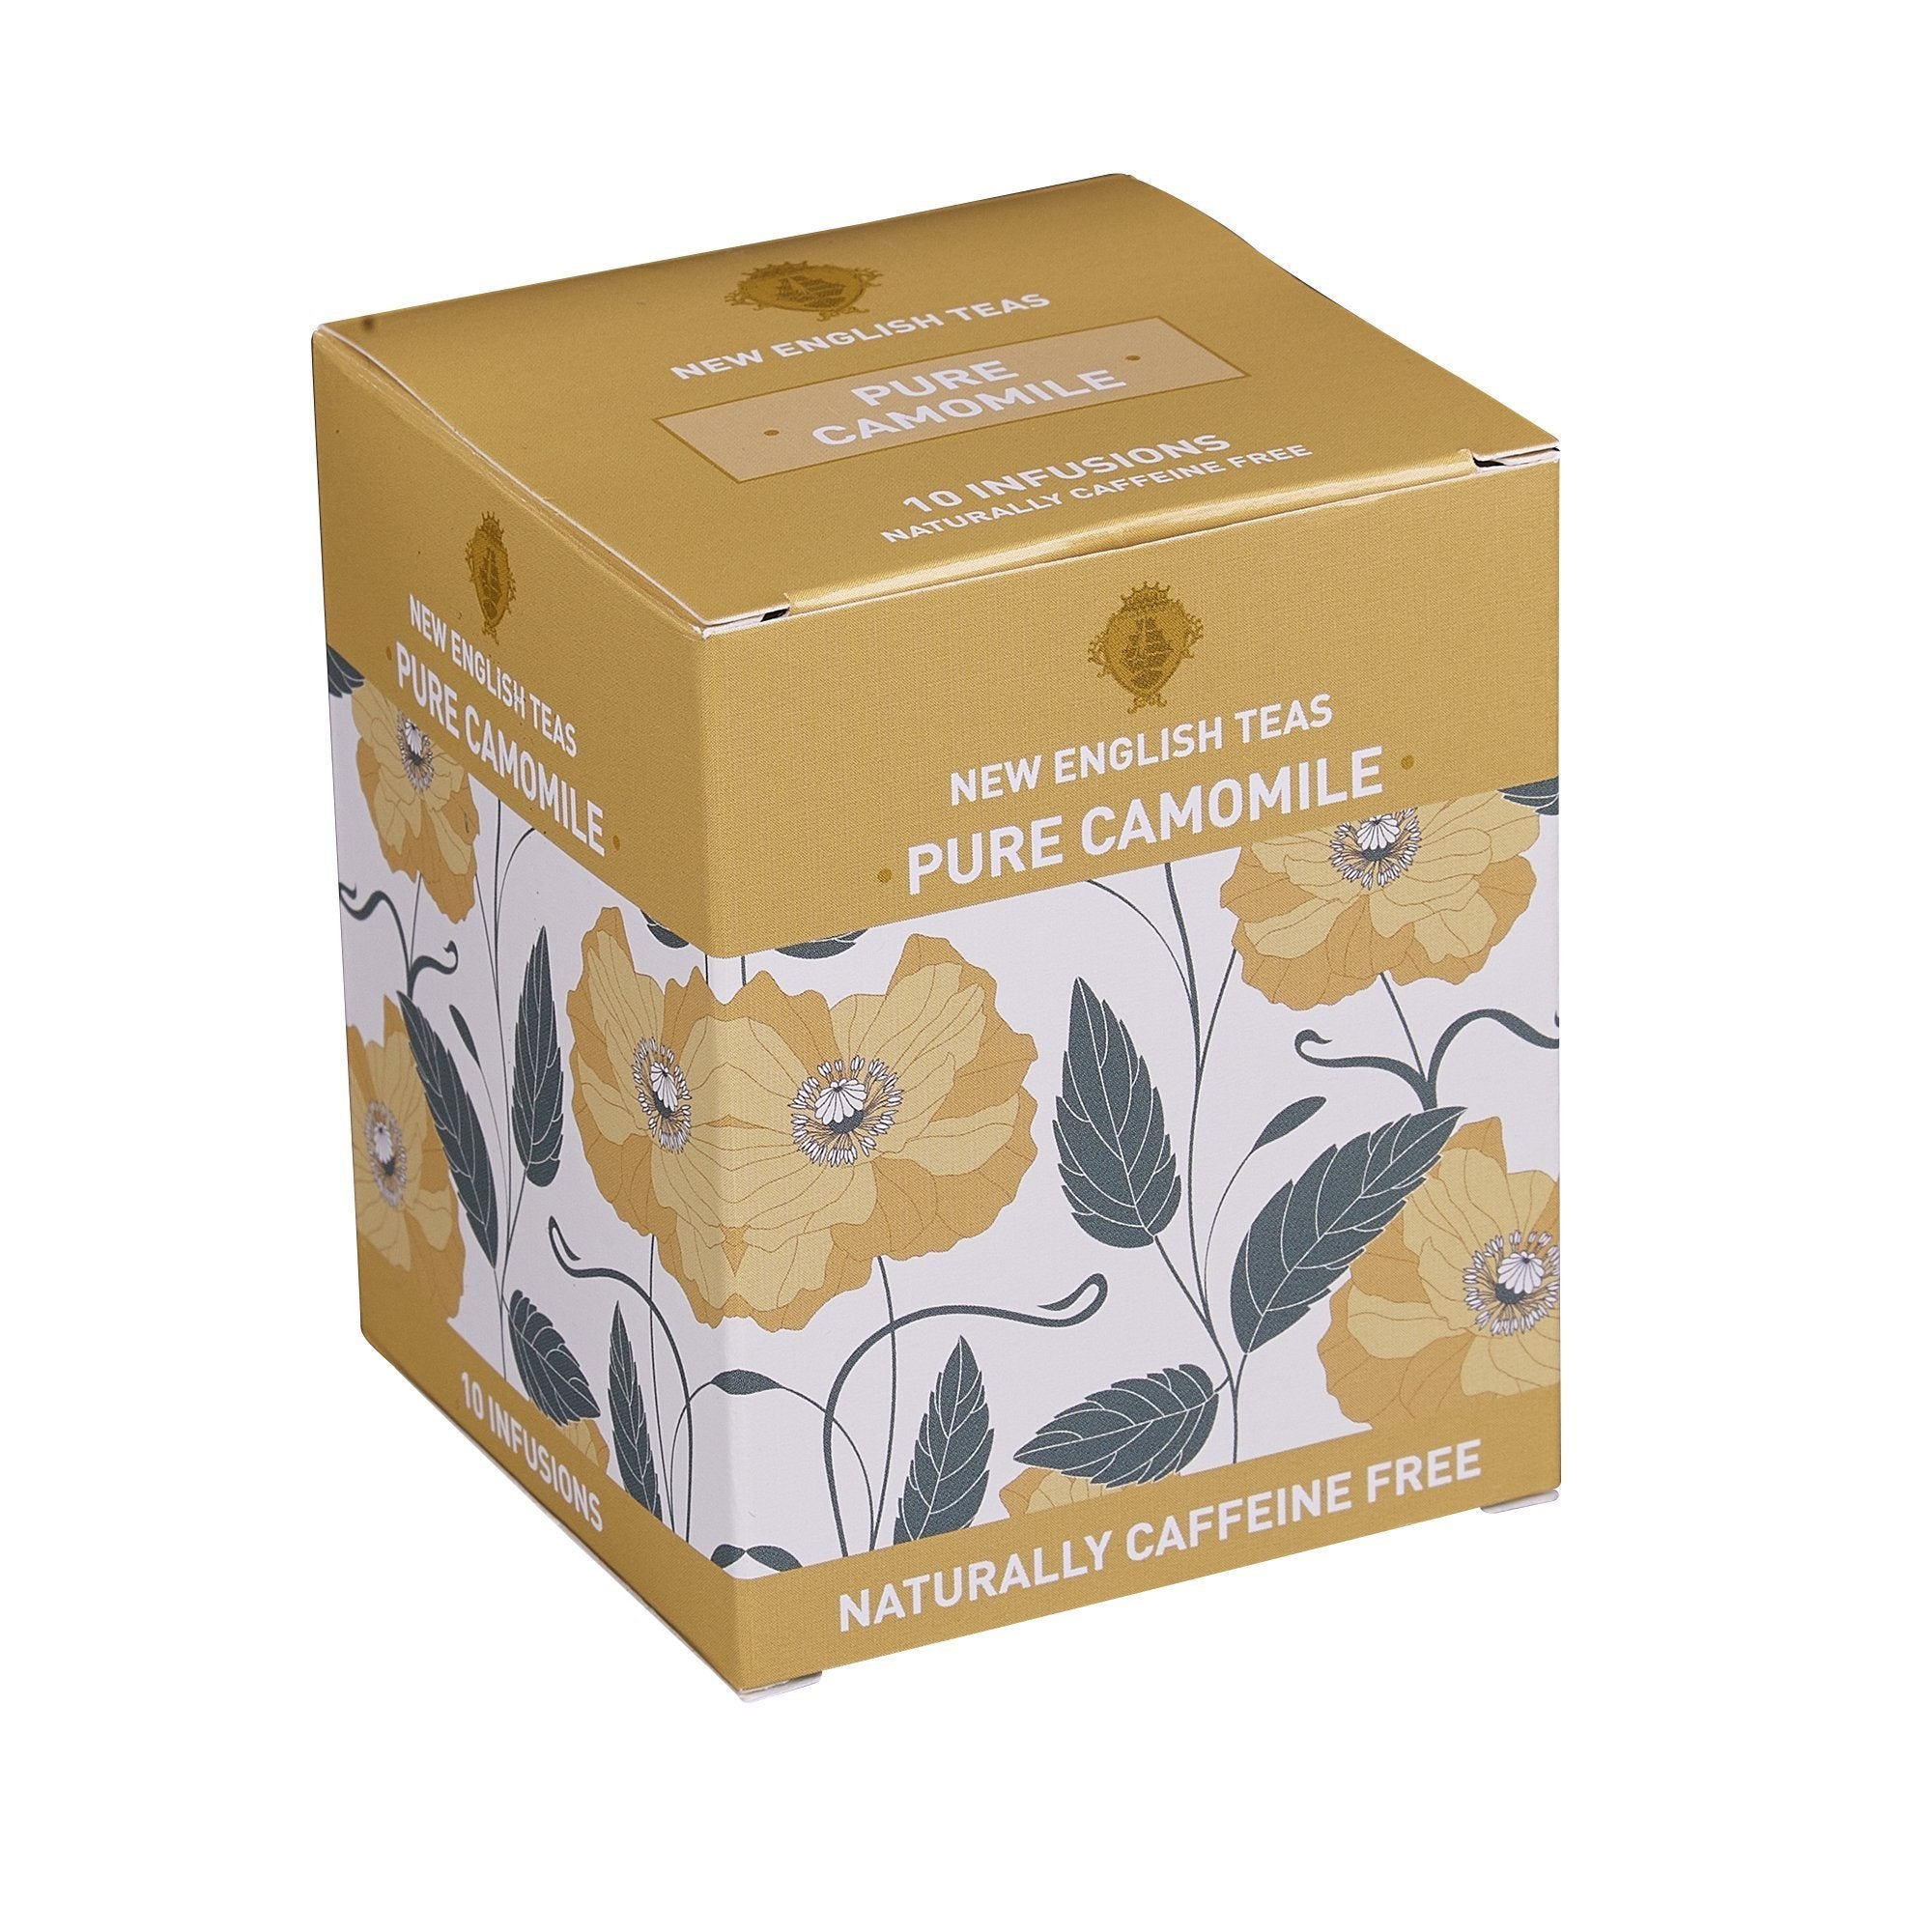 Pure Camomile Tea 10 Individually Wrapped Teabags Herbal Tea New English Teas